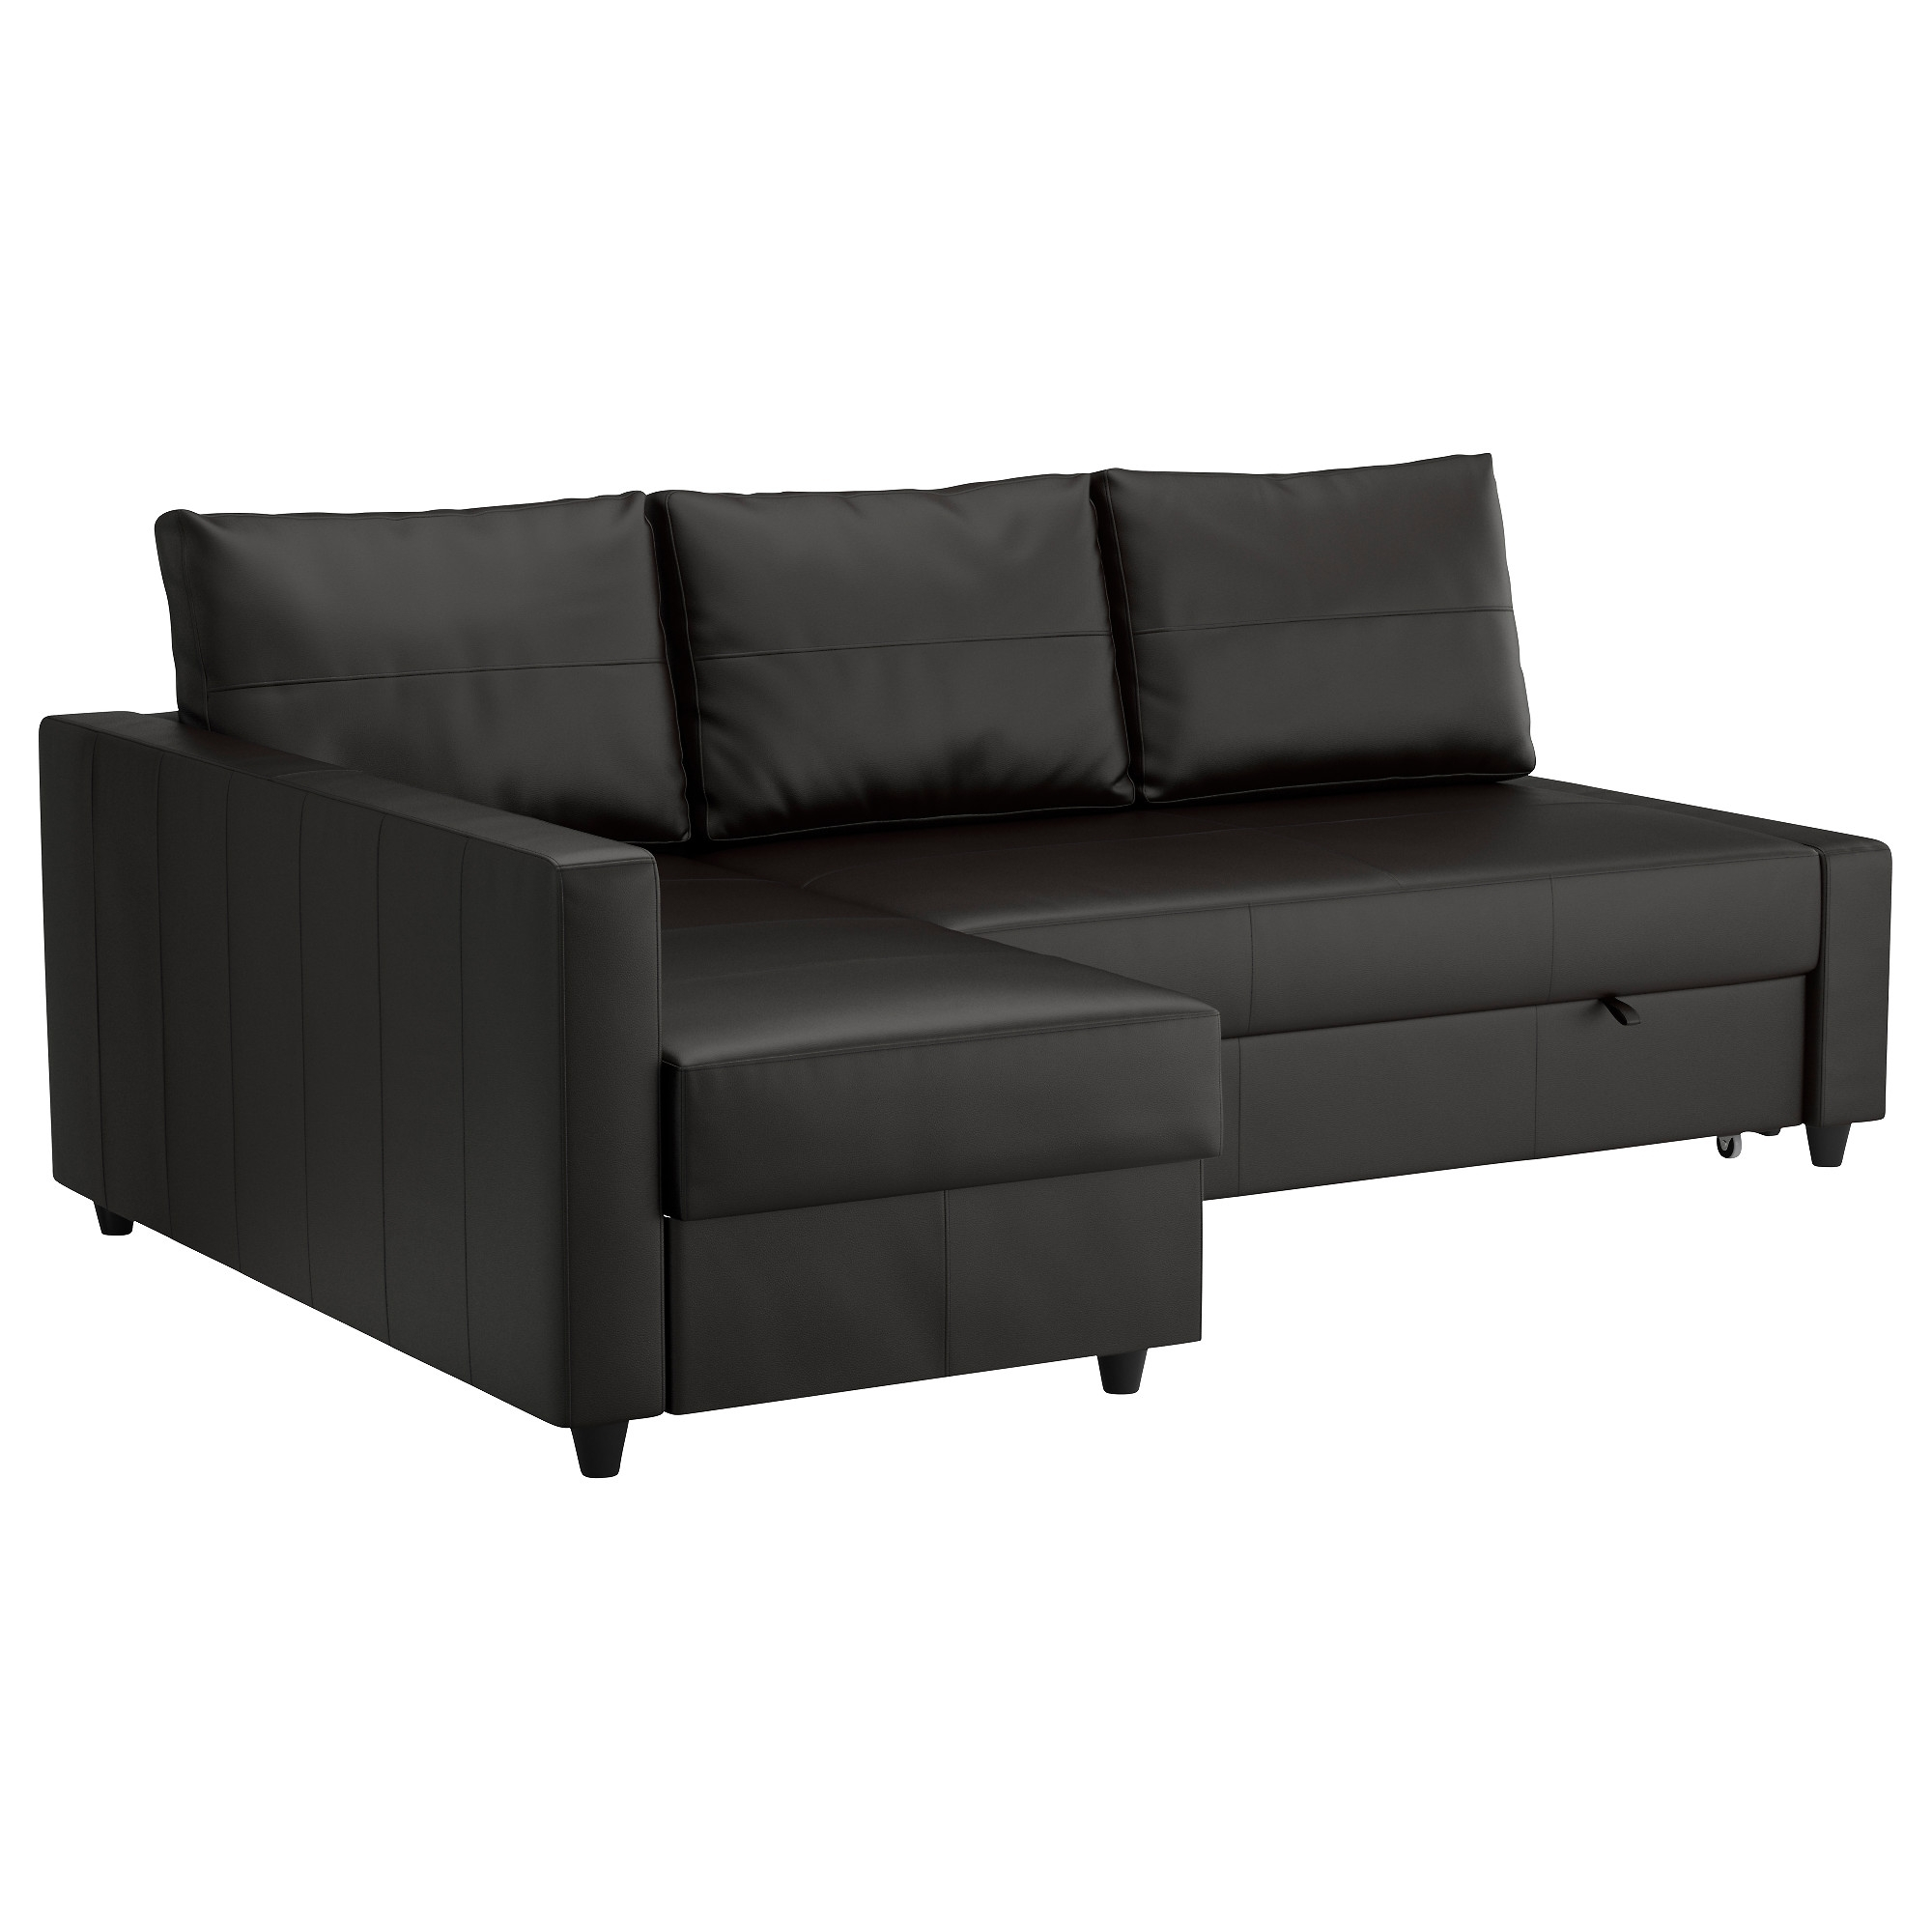 Widely Used Chaise Lounge Sofa Beds Within Friheten Sleeper Sectional,3 Seat W/storage – Skiftebo Dark Gray (View 15 of 15)